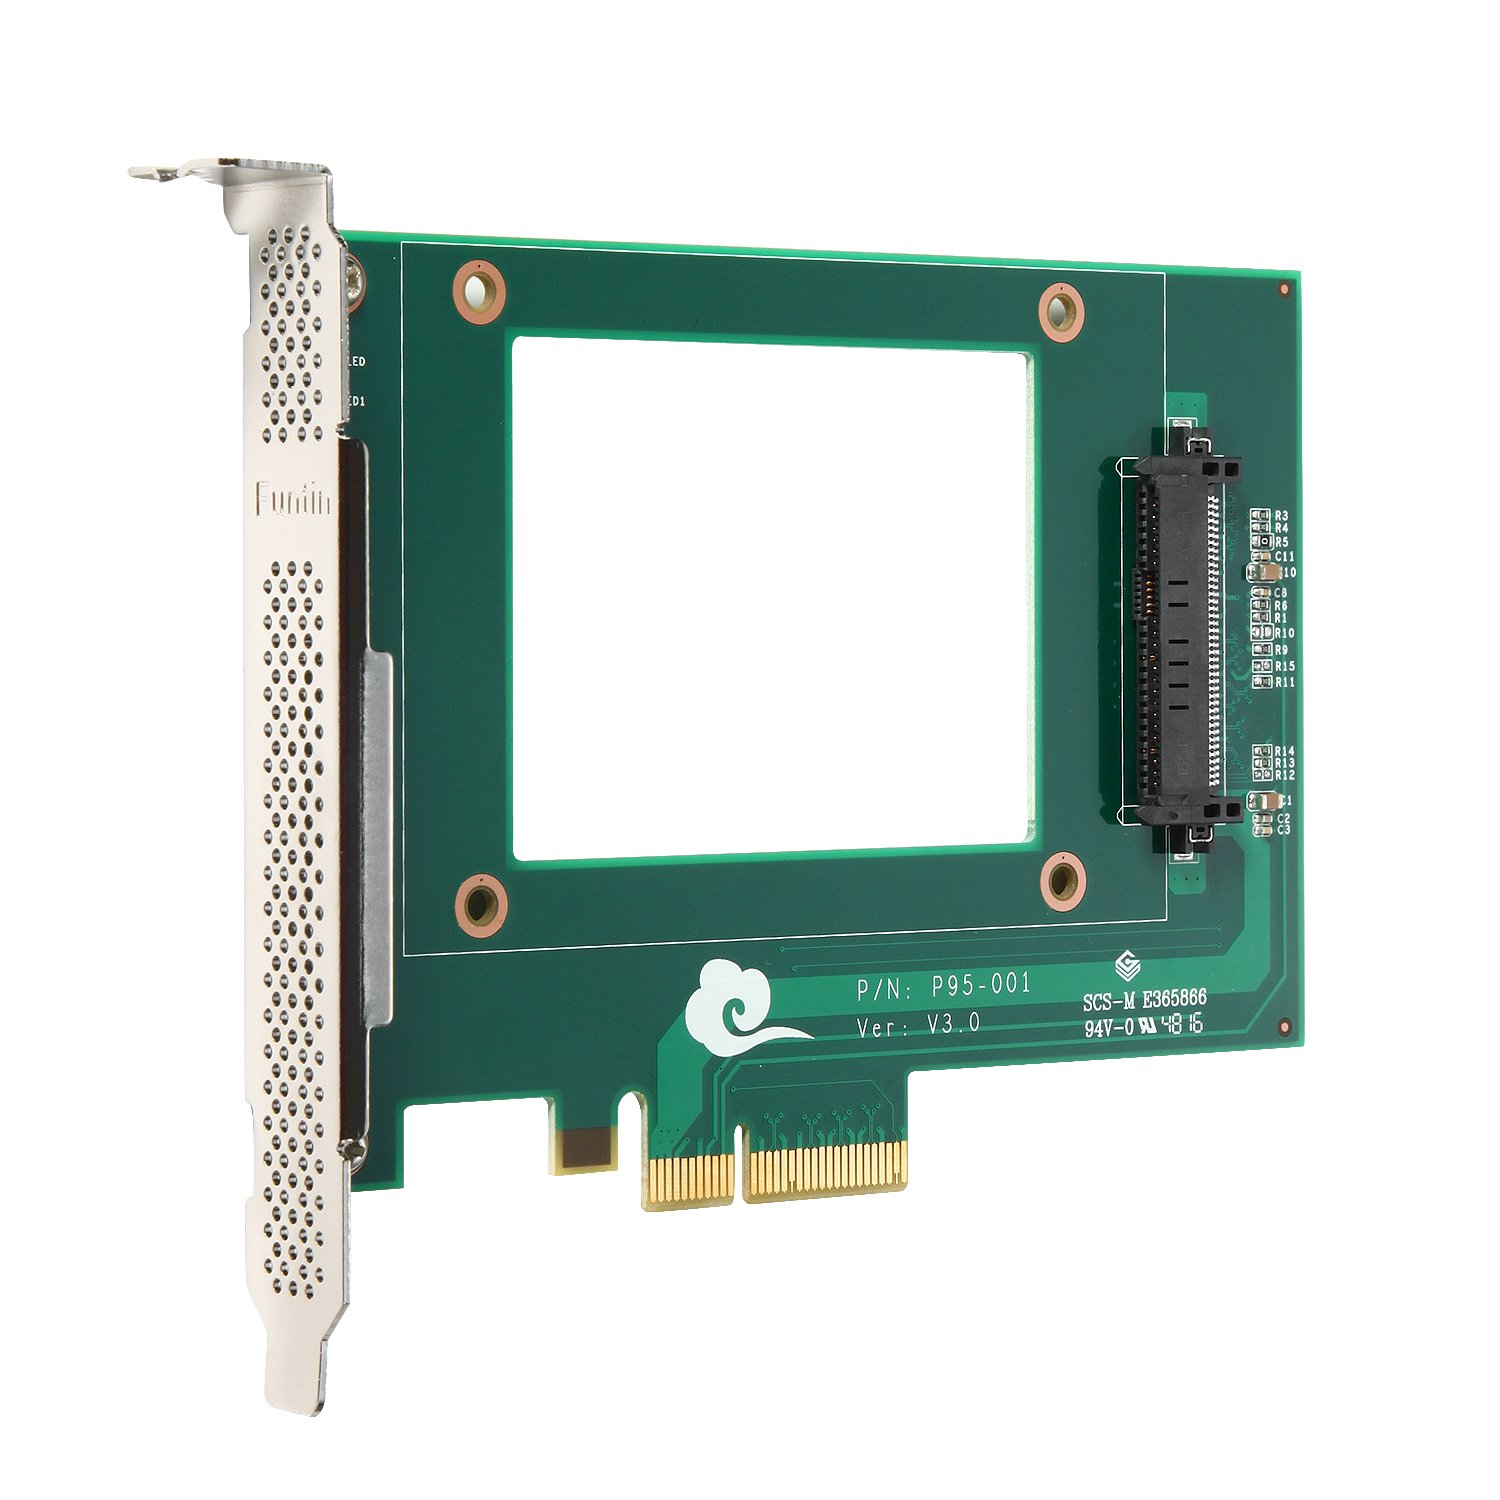 Funtin PCIe NVMe SSD Adapter with U.2 ( SFF-8639 ) Interface for 2.5'' NVMe SSD